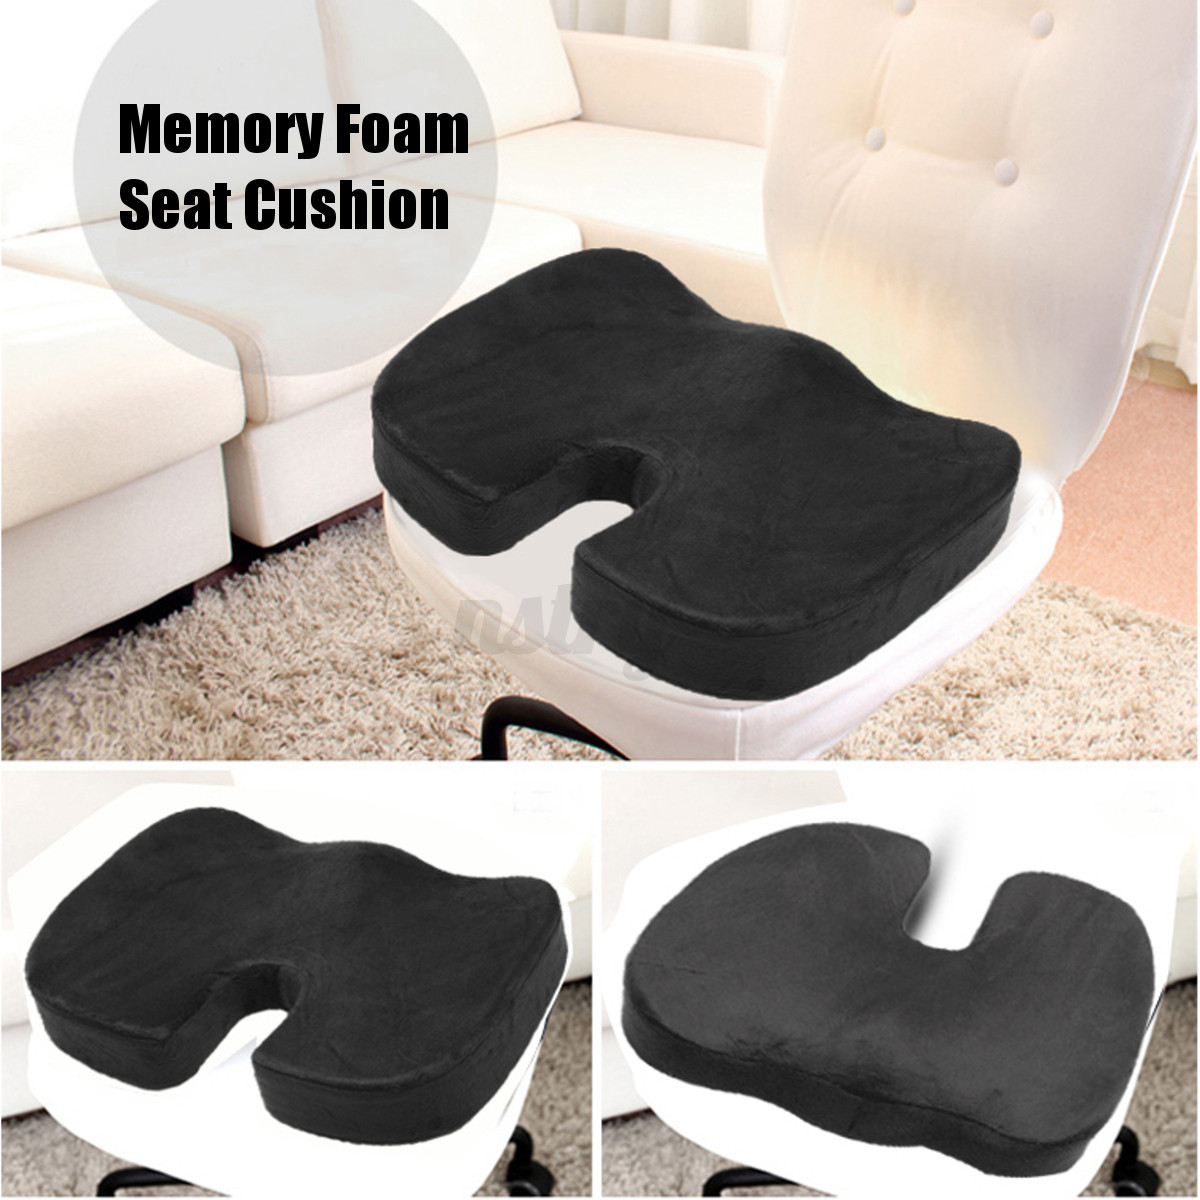 coccyx orthopedic memory foam seat cushion offic chair car seat back pain relief ebay. Black Bedroom Furniture Sets. Home Design Ideas